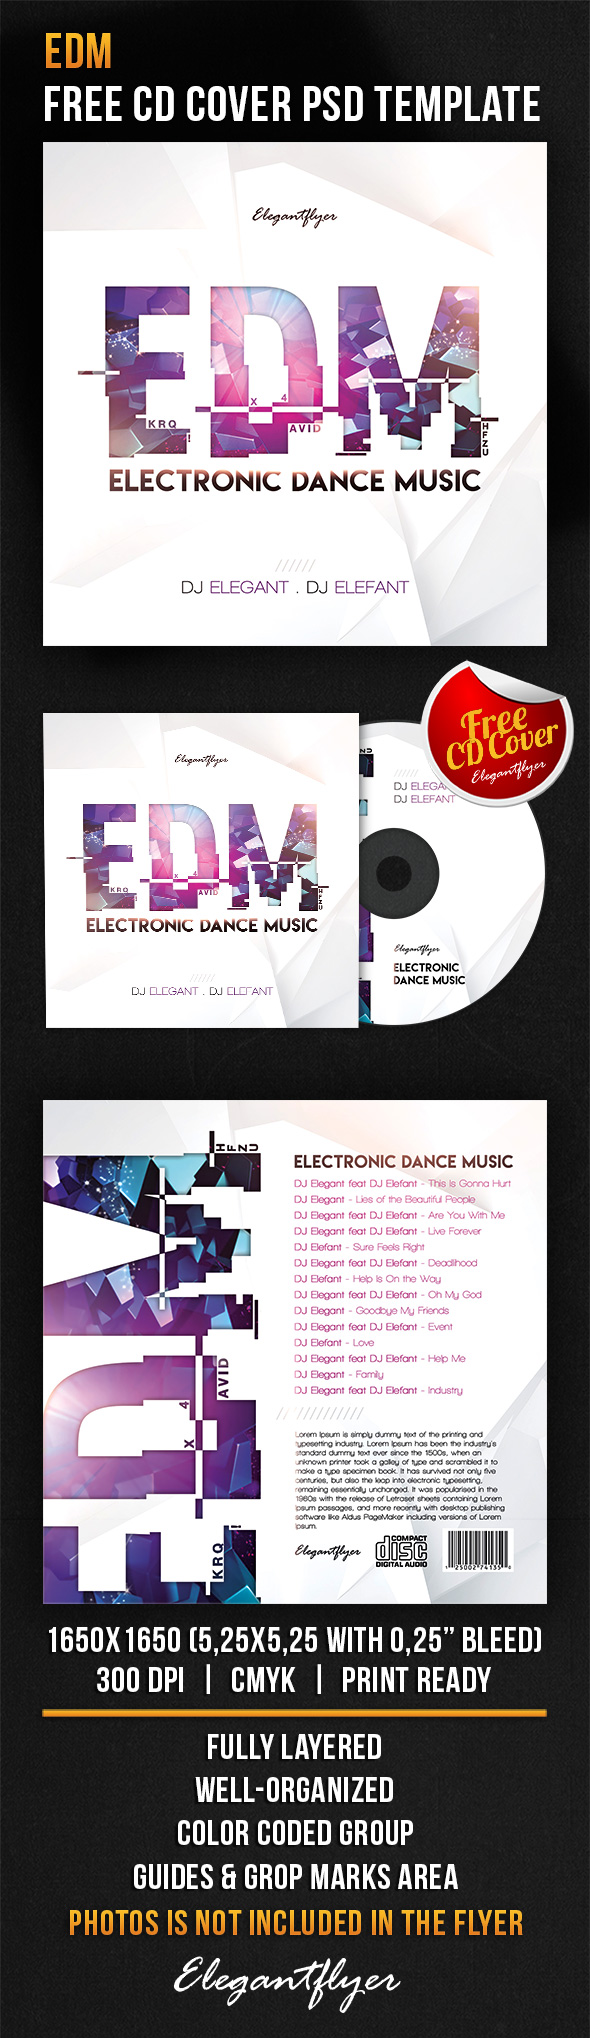 EDM – Free CD Cover PSD Template